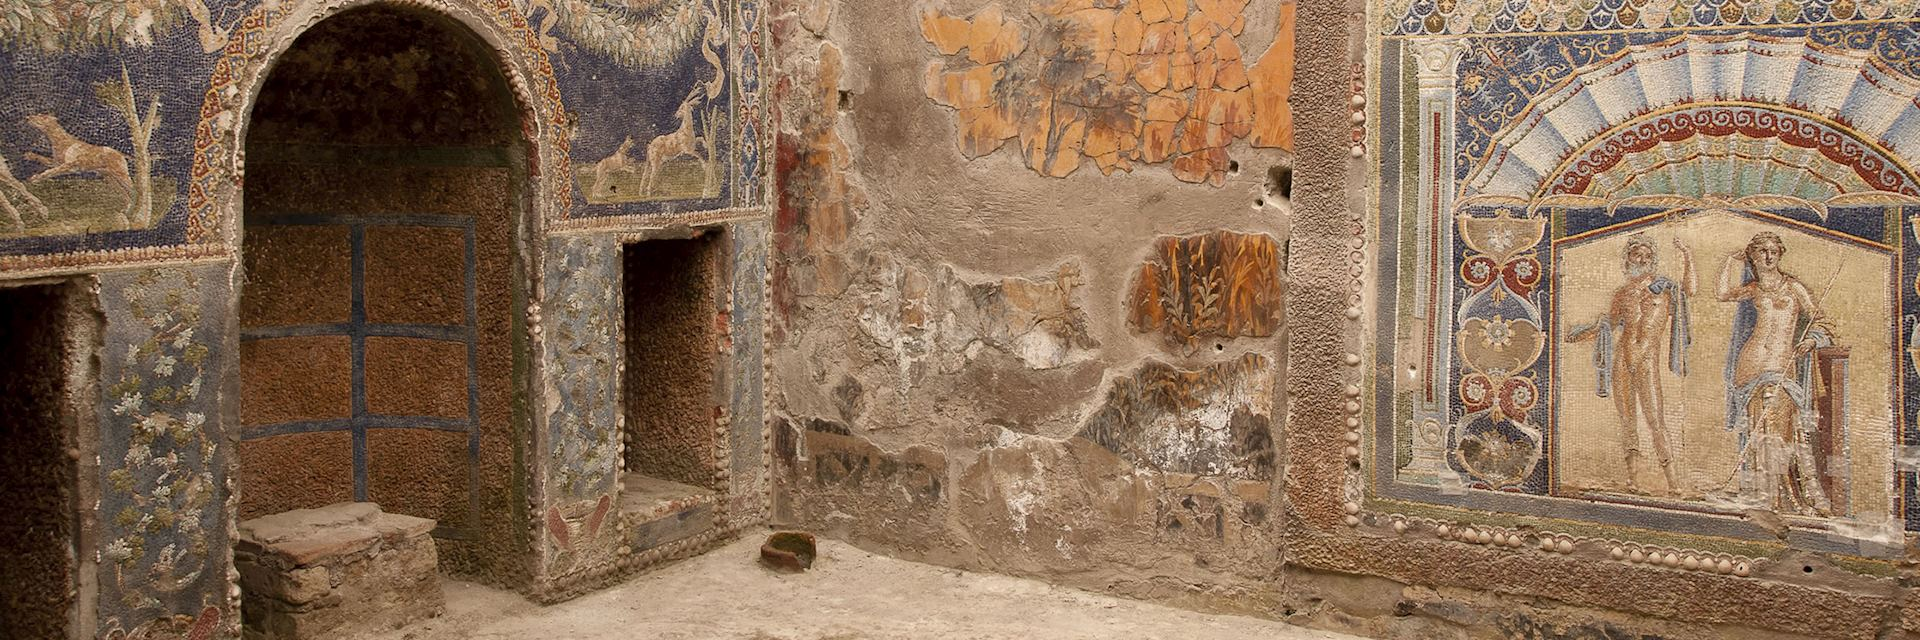 Richly decorated mosaics on the walls of a villa unerthed in Herculaneum